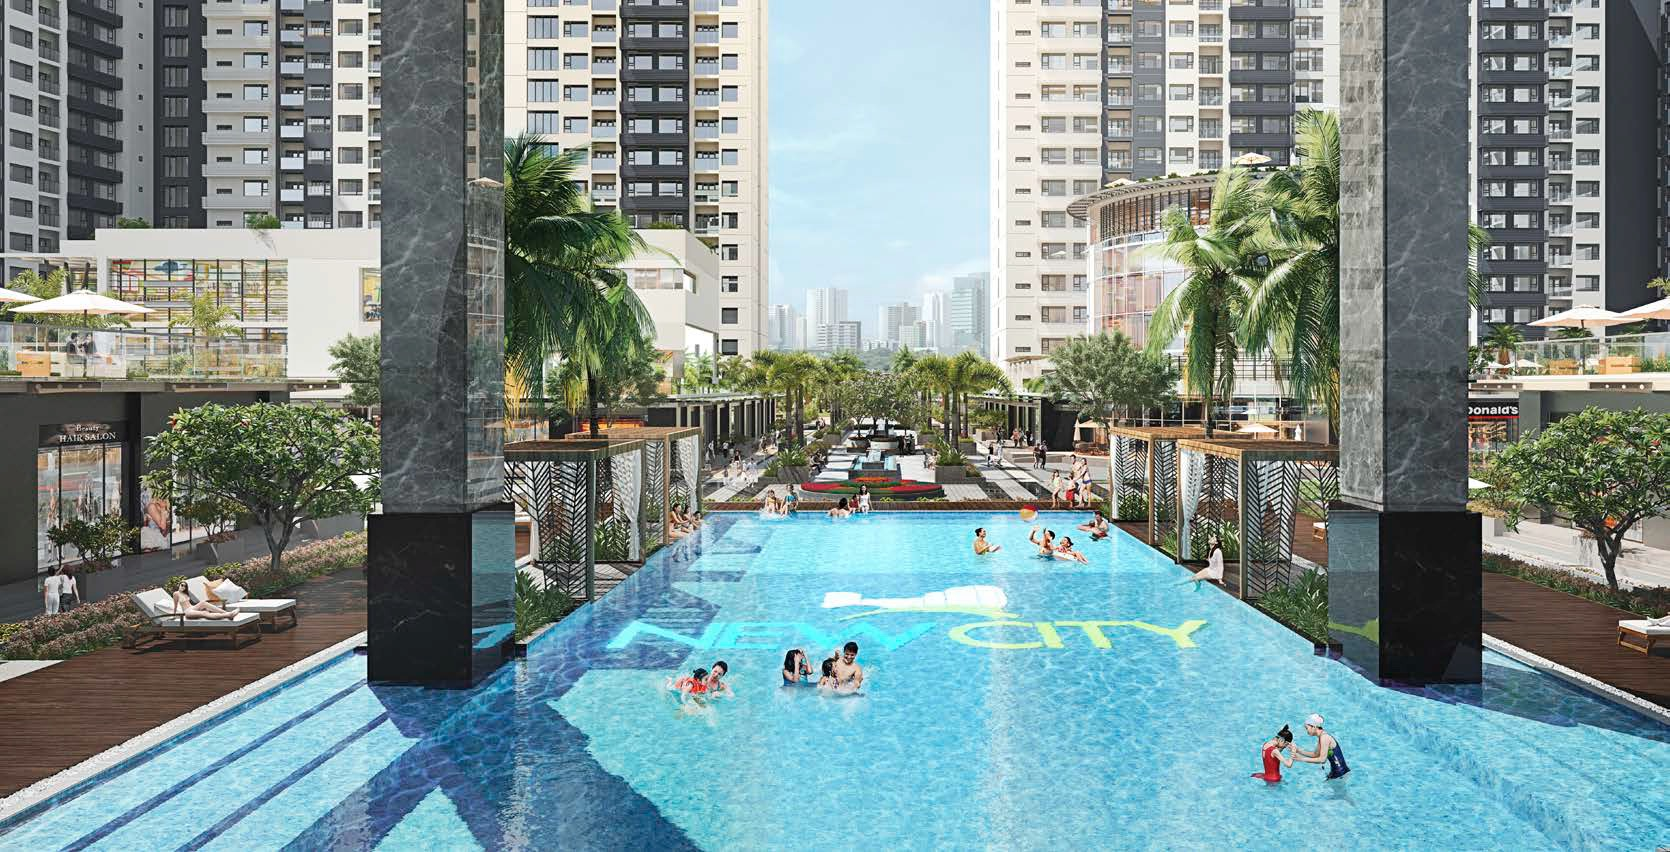 new-city-hcmc-thu-thiem-swimmingpool